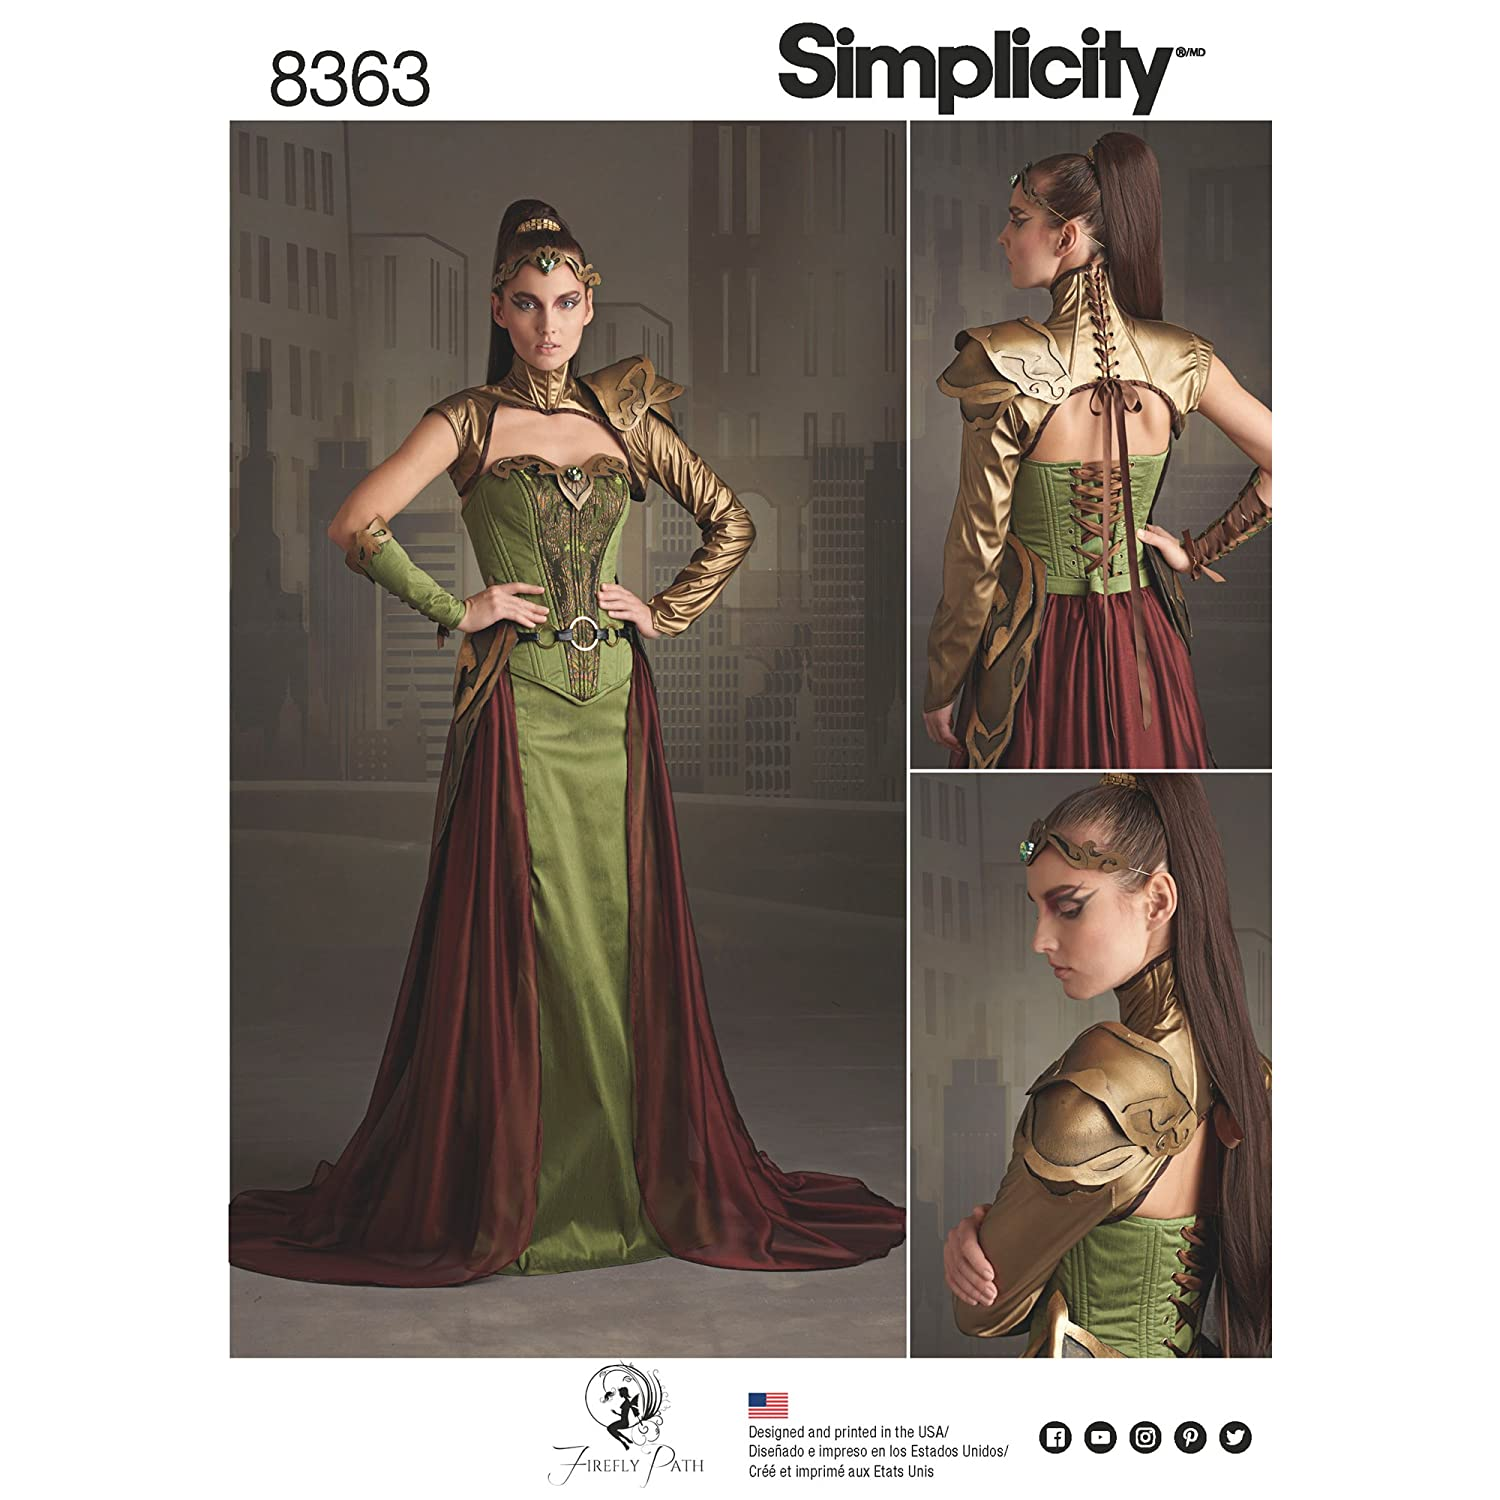 Simplicity Pattern 8363 H5 Misses' Fantasy Ranger Costume by Firefly Path, Size 6-8-10-12-14 292396